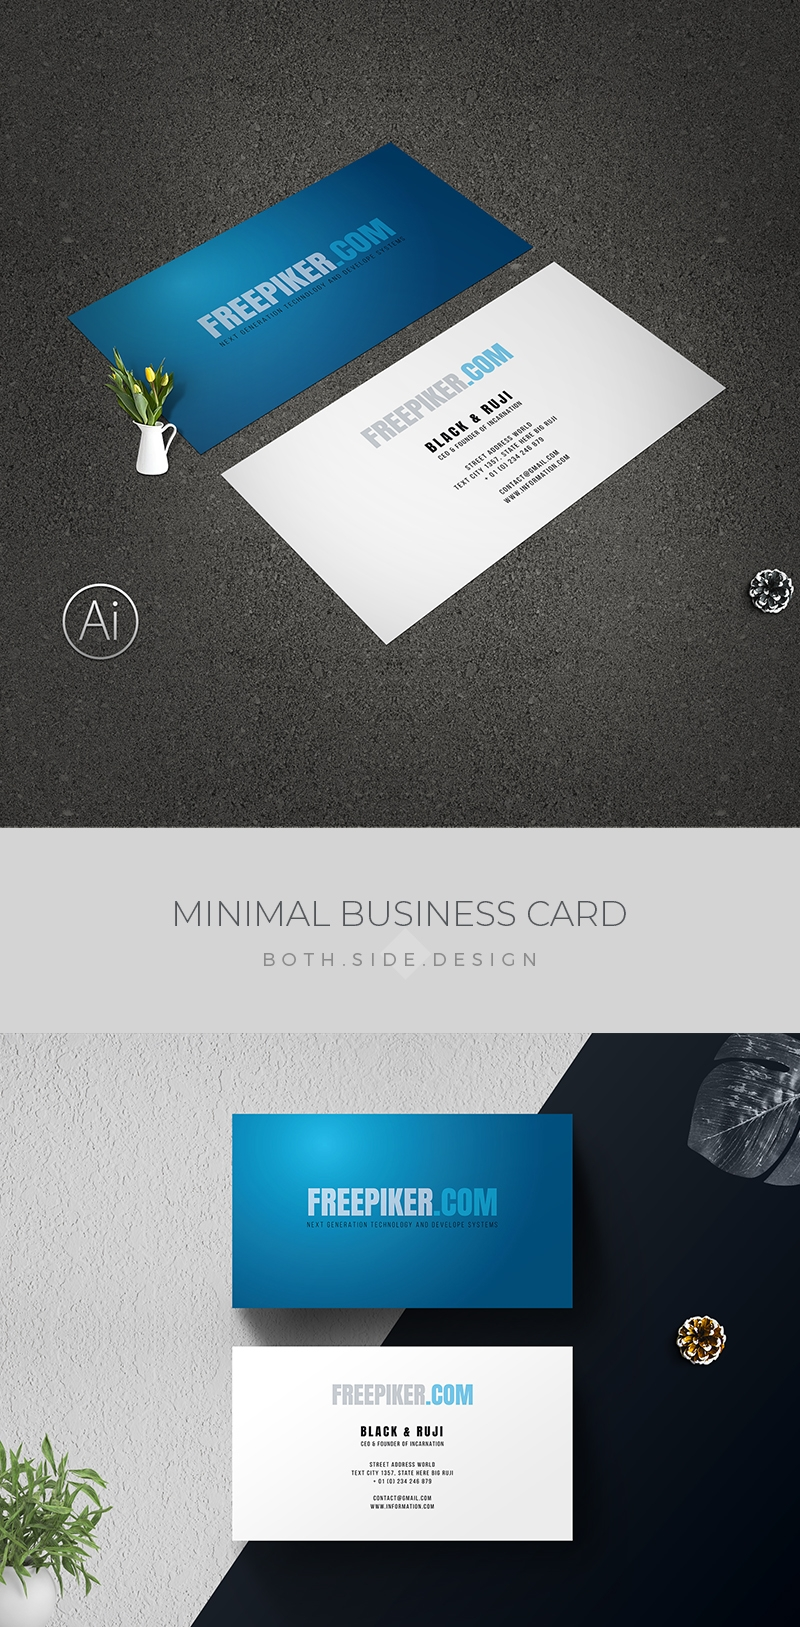 Awesome Business Card With Blue Accent